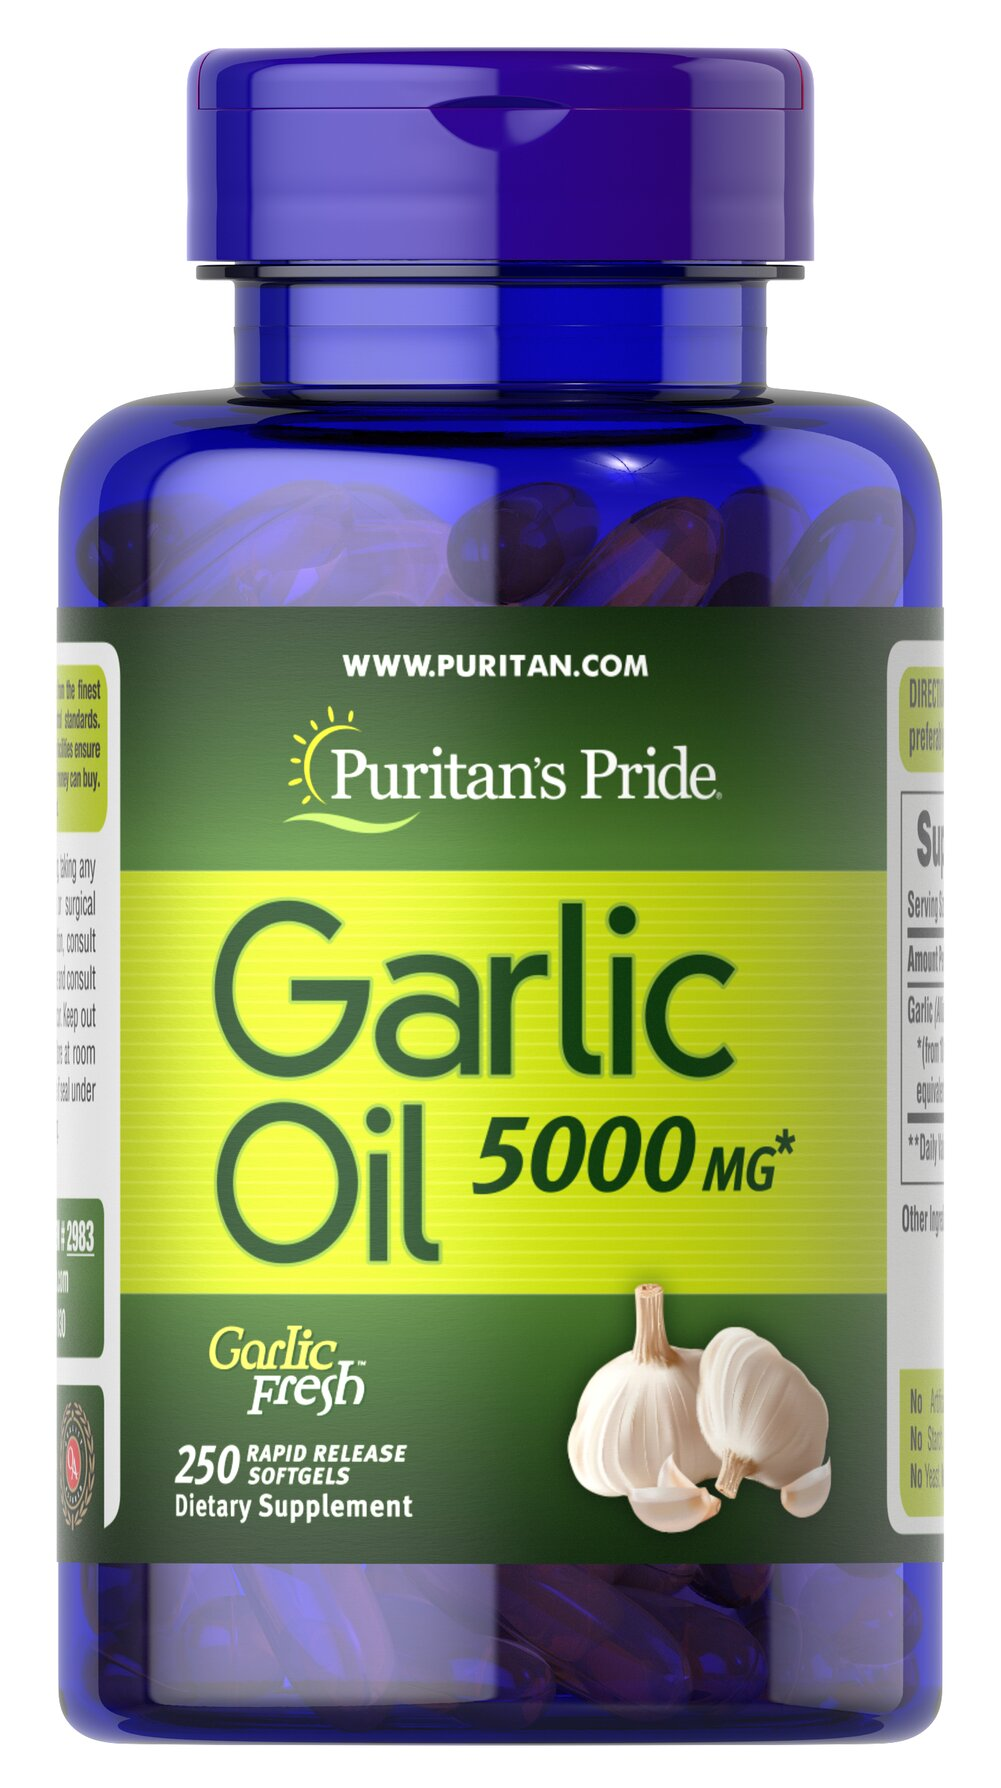 Garlic Oil 5000 mg <p>Cholesterol Support**</p><p>Supports Cardiovascular Health**</p><p>Whether warding off evil spirits or flavoring sauces, Garlic has been known for its beneficial qualities. Natural ingredients in Garlic include alliin, allinase and allicin. Garlic promotes cardiovascular health and helps to maintain cholesterol levels that are already within the normal range.**</p> 250 Softgels 5000 mg $19.99